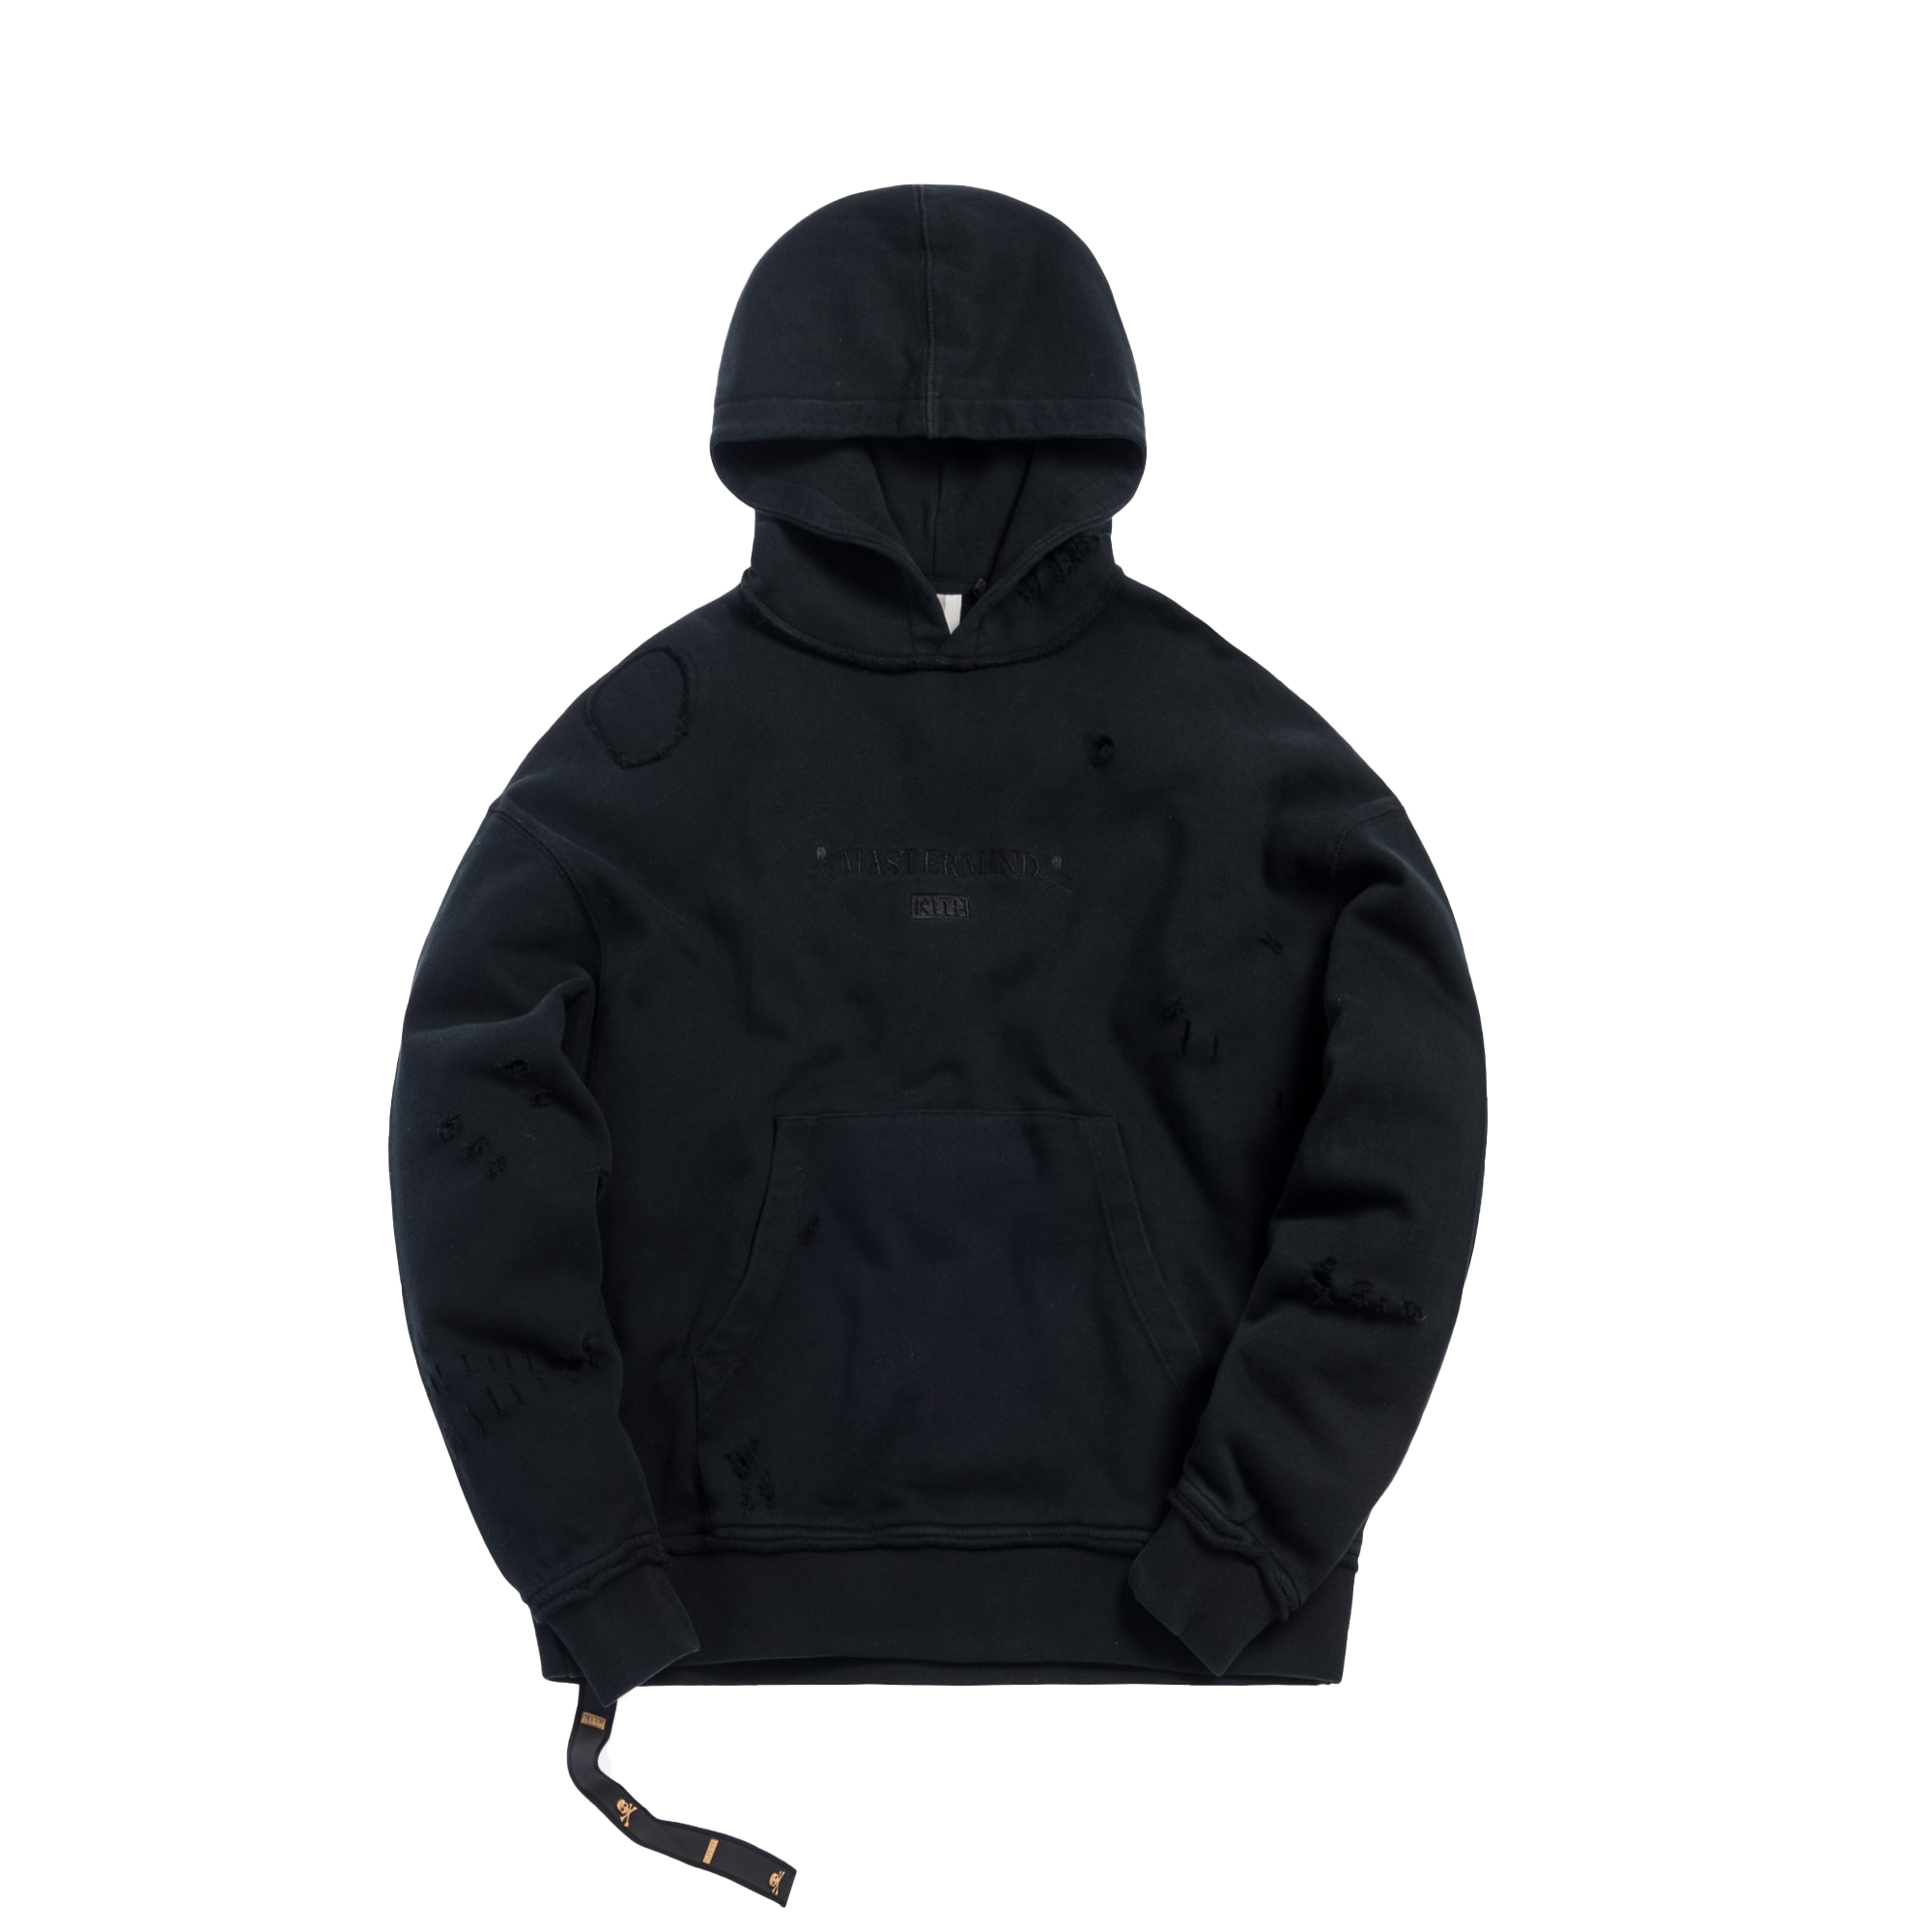 Kith x mastermind WORLD Knit Hoodie Black